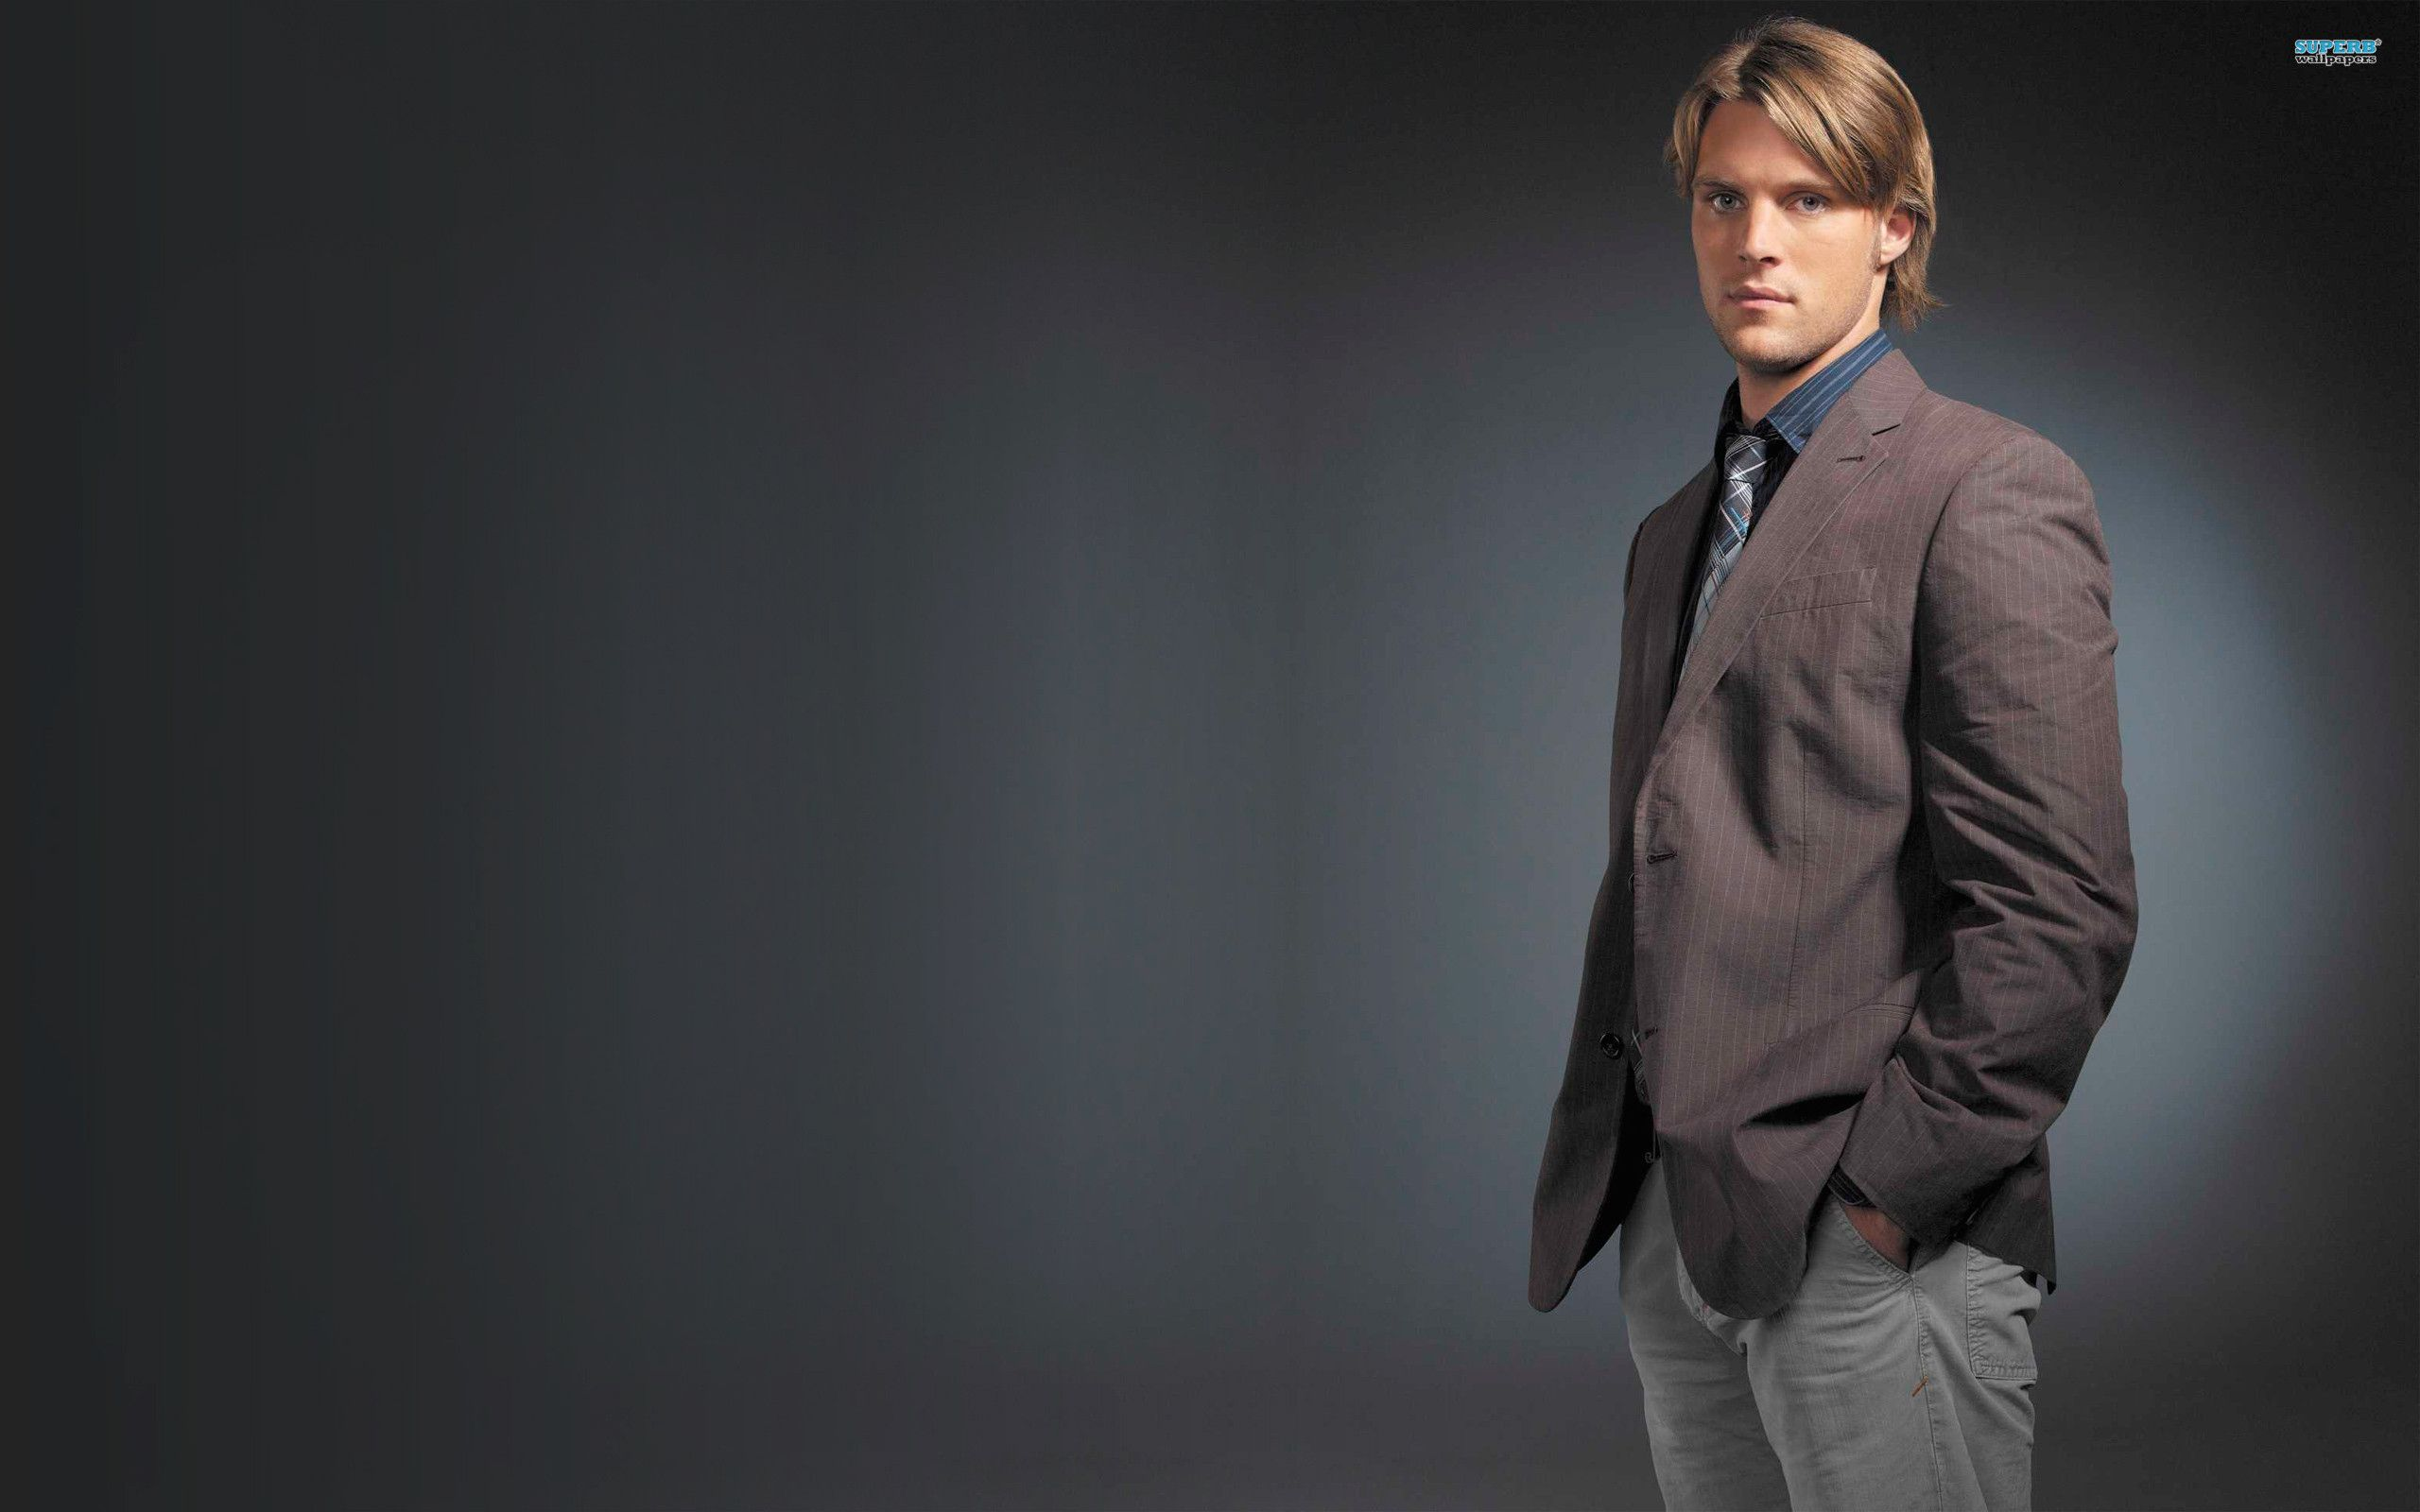 2560x1600 - Jesse Spencer Wallpapers 2